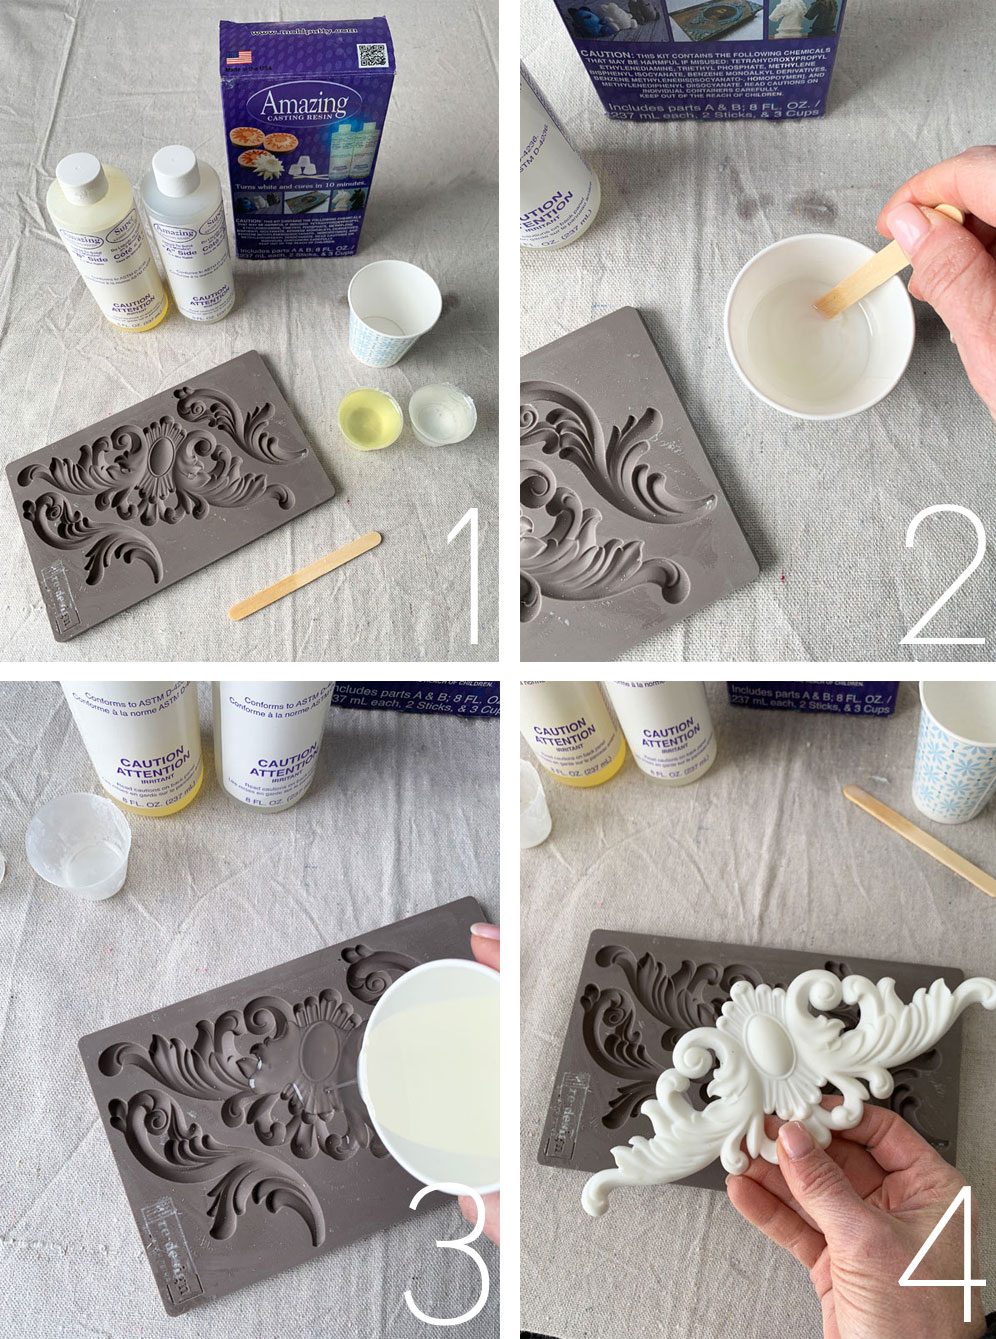 How to use Amazing Casting Resin